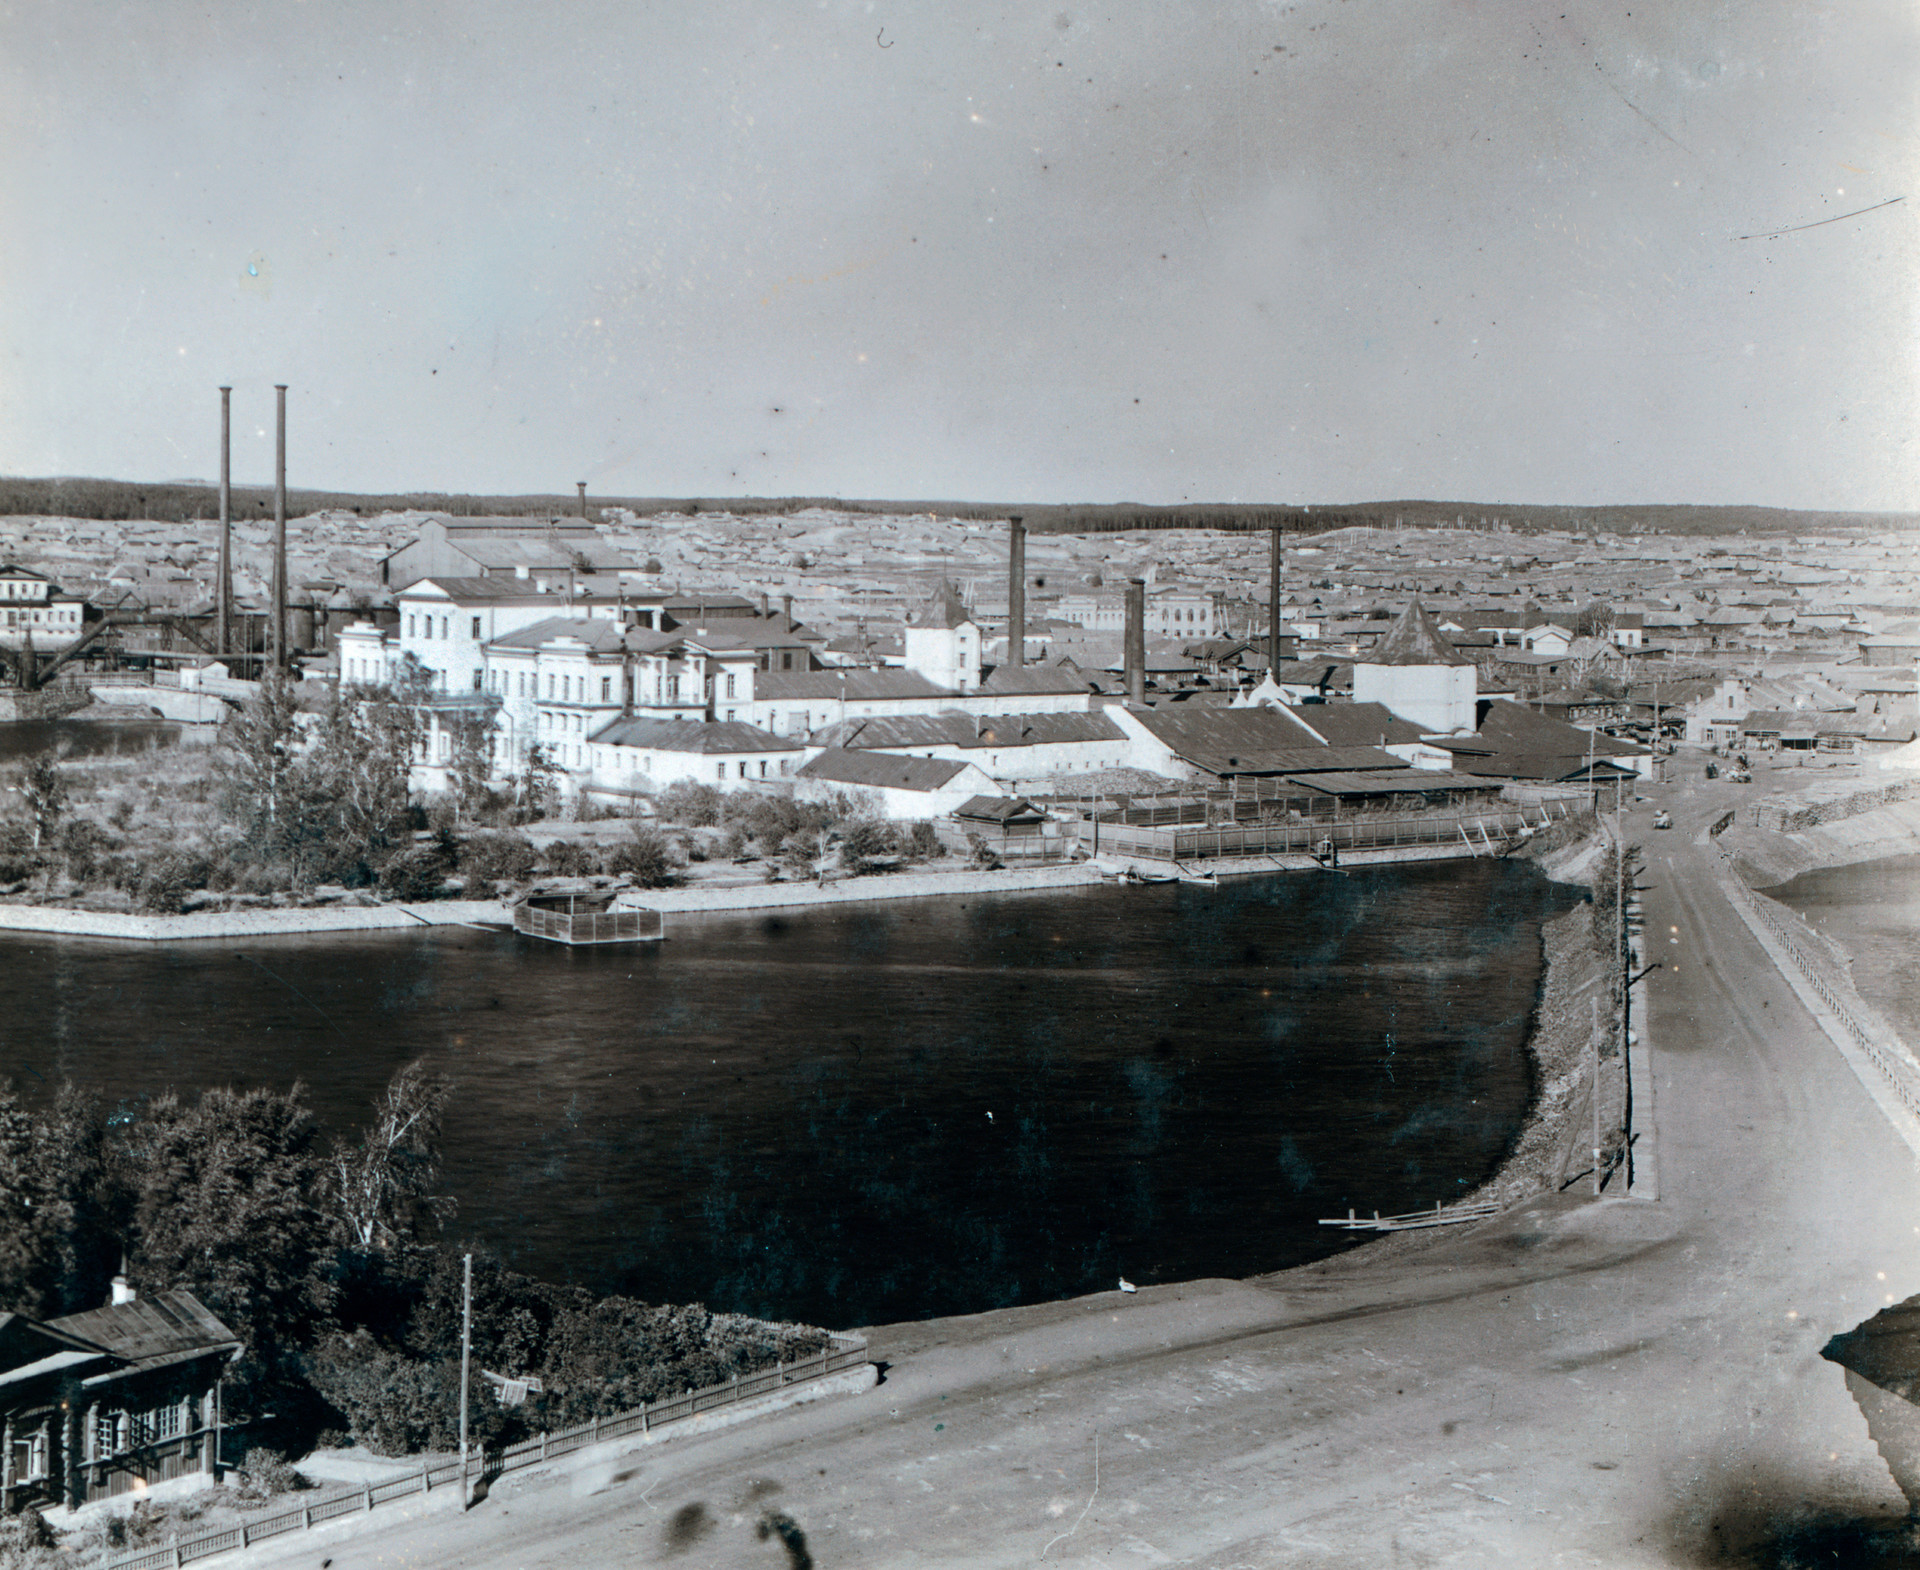 View of main Kyshtym factory with White House on former Demidov estate. Foreground: Town Pond (Kyshtym River). Right: 18th-century tower built by Nikita Demidov. 1909.